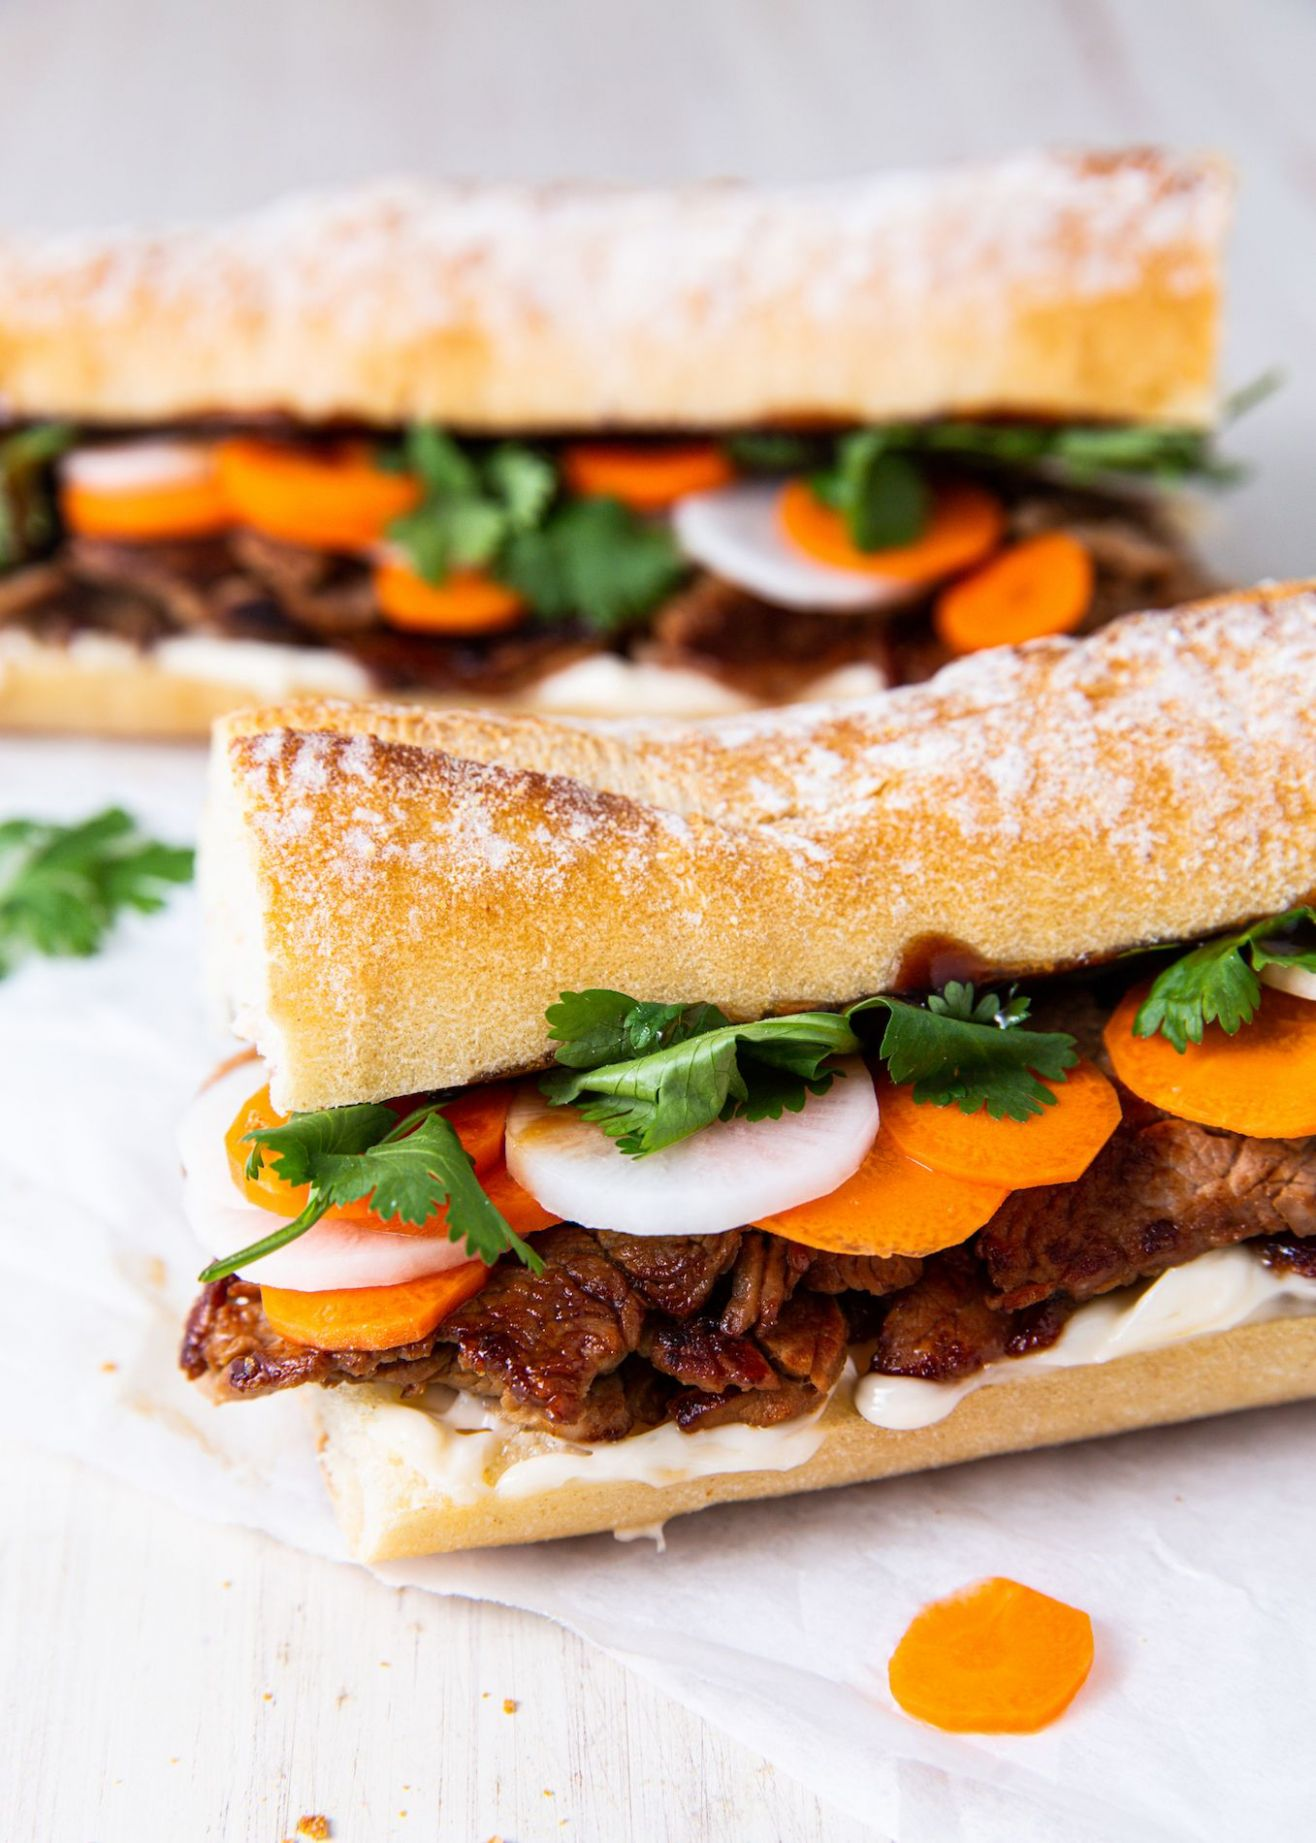 12+ Easy Sandwich Recipes for Lunch - Easy Lunch Sandwiches - Sandwich Recipes Delish